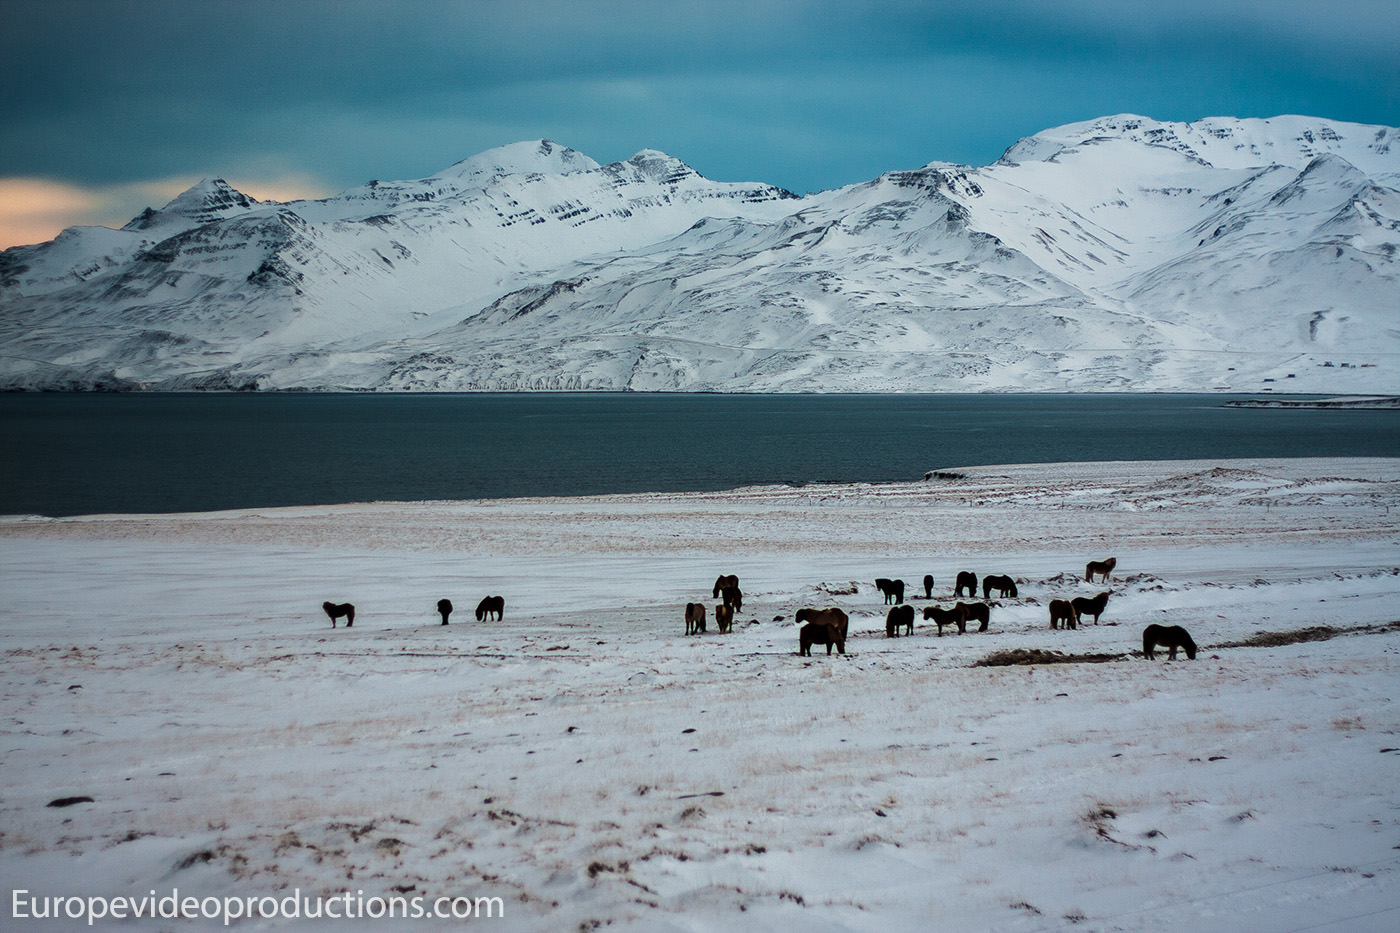 Icelandic horses in winter landscape in Iceland